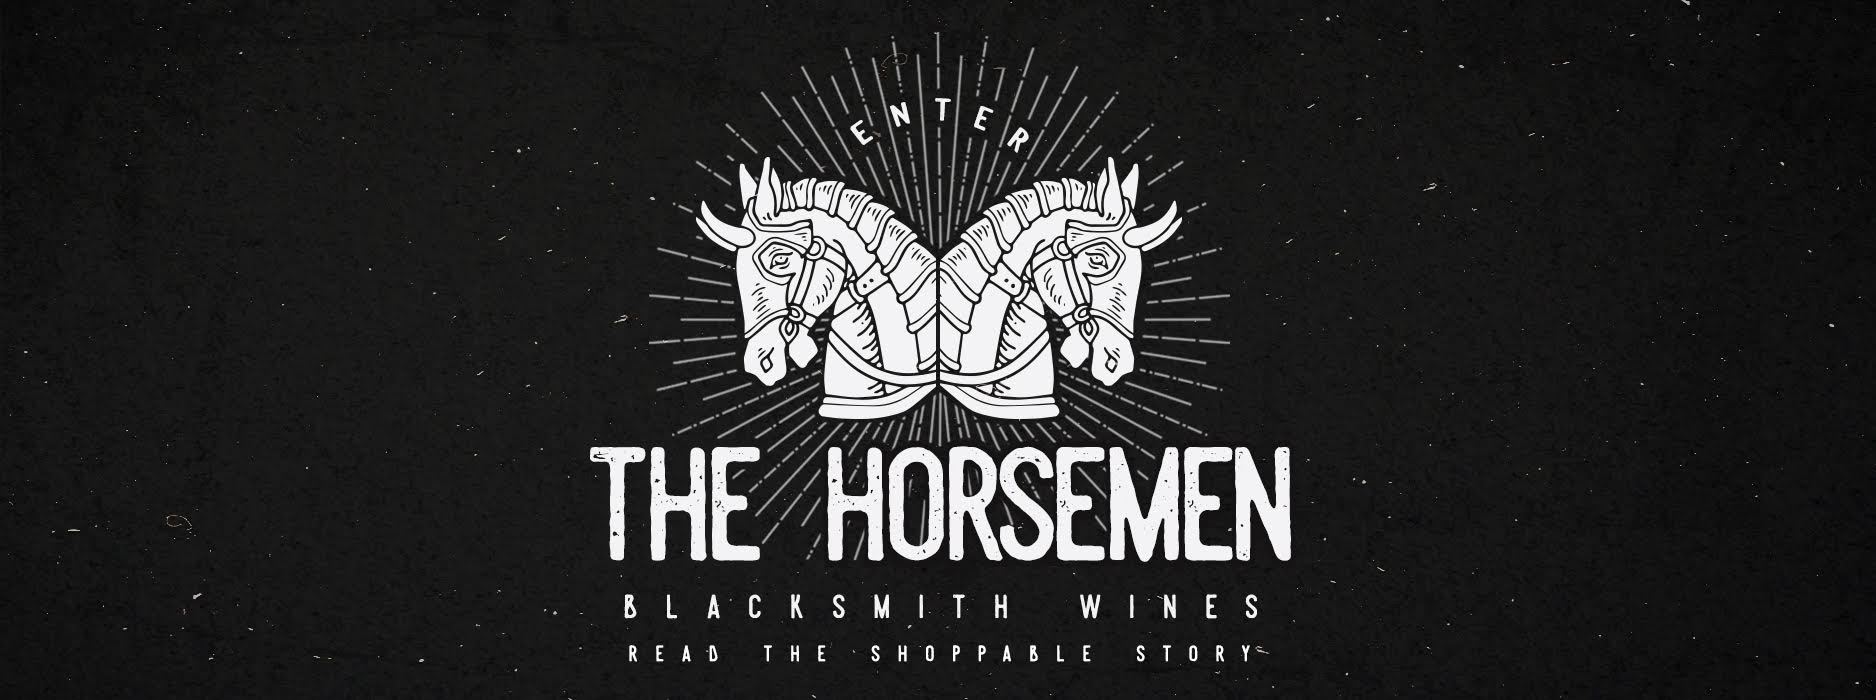 Enter The Horsemen | Blacksmith Wines | Glou Glou